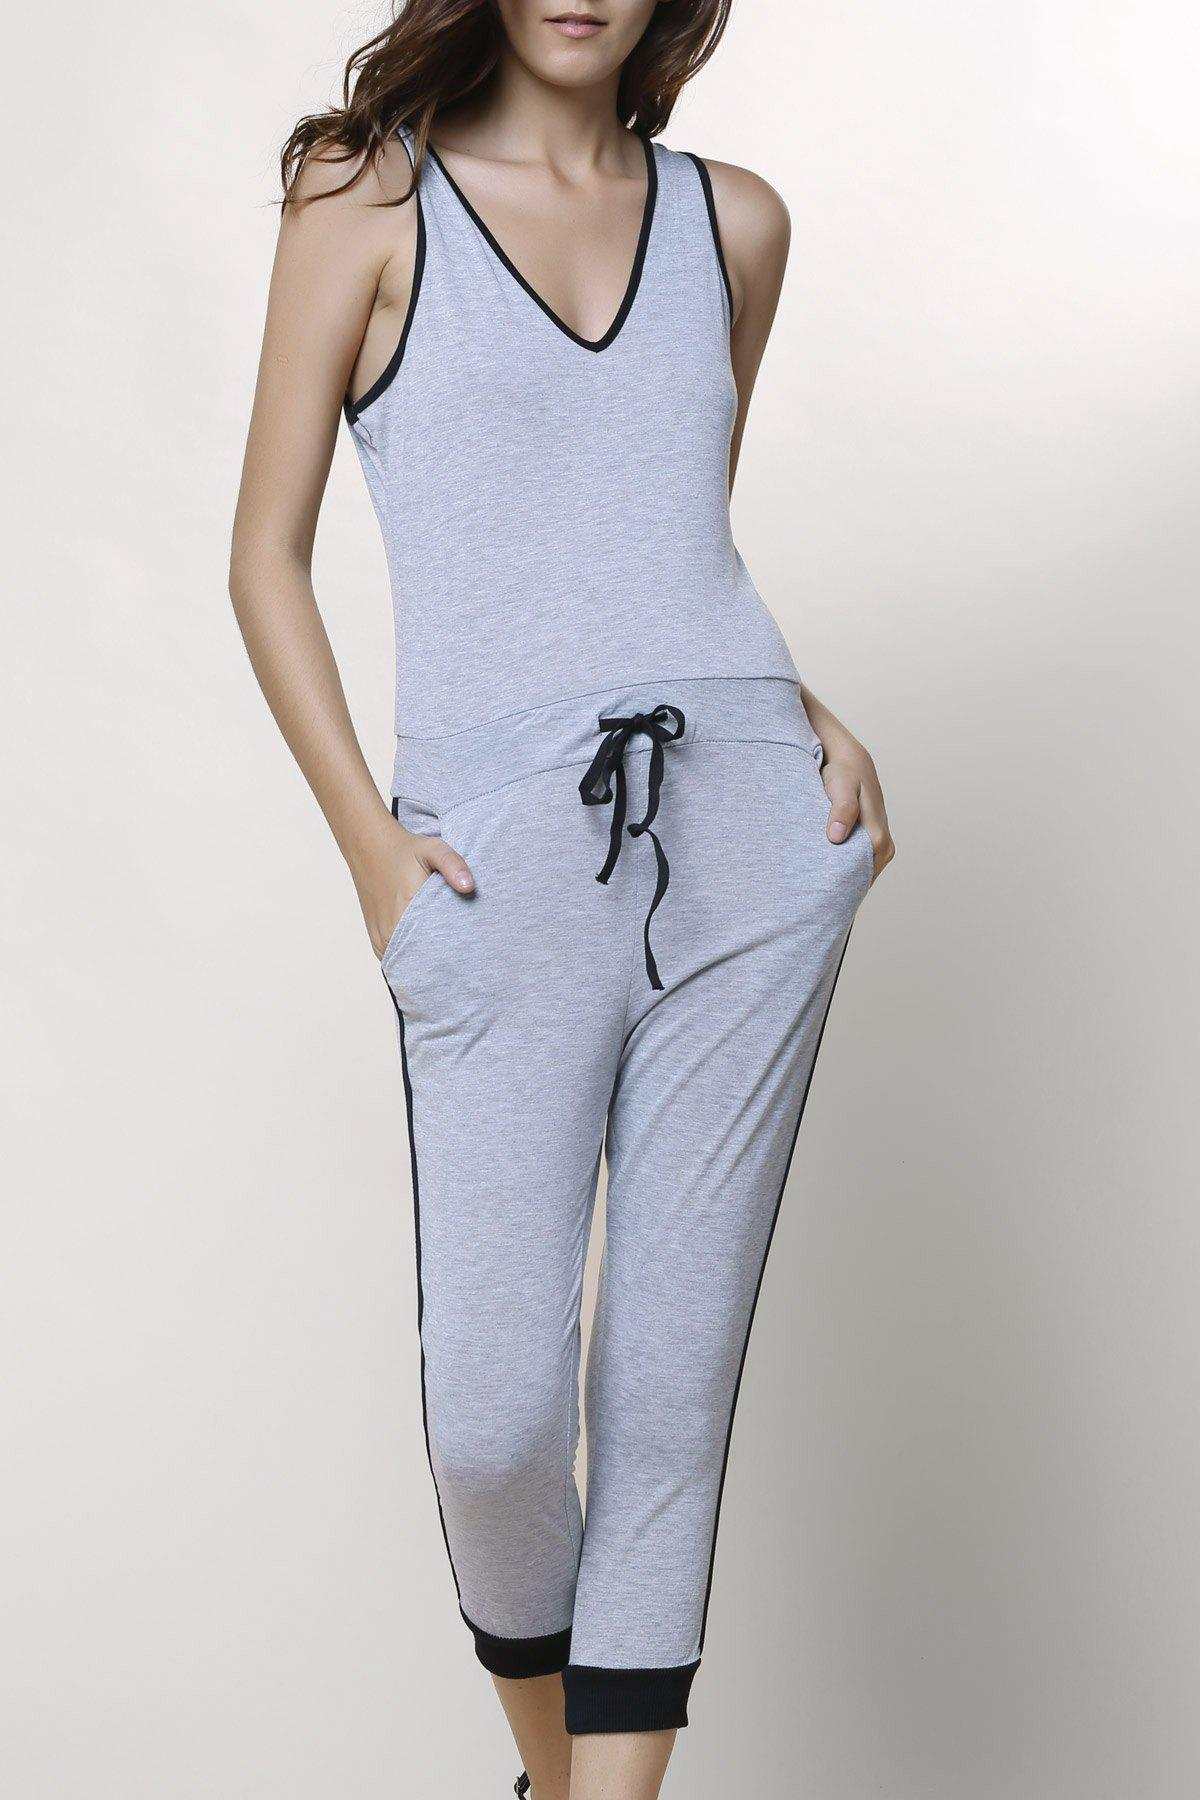 Stylish V-Neck Sleeveless Drawstring Spliced Women's Jumpsuit - GRAY L